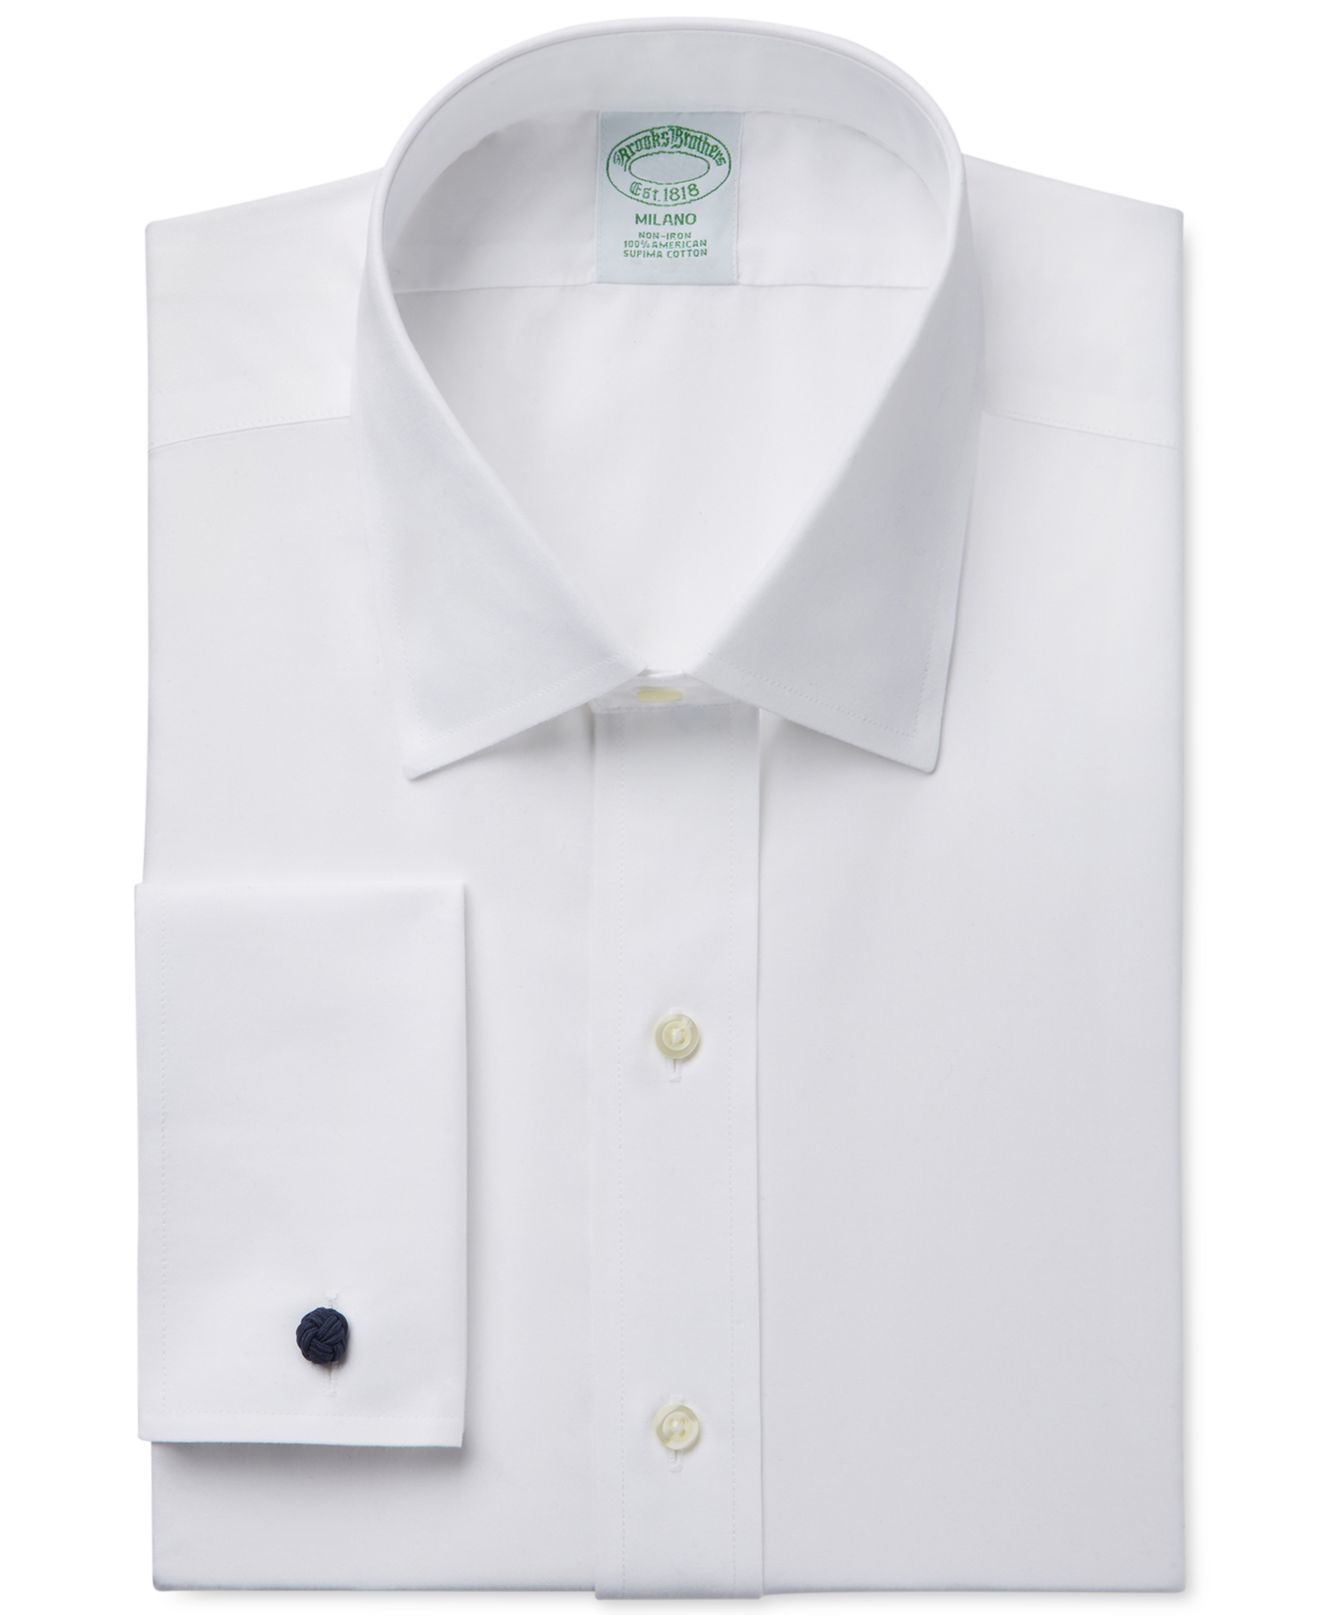 Brooks brothers milano extra slim fit non iron white solid White french cuff shirt slim fit